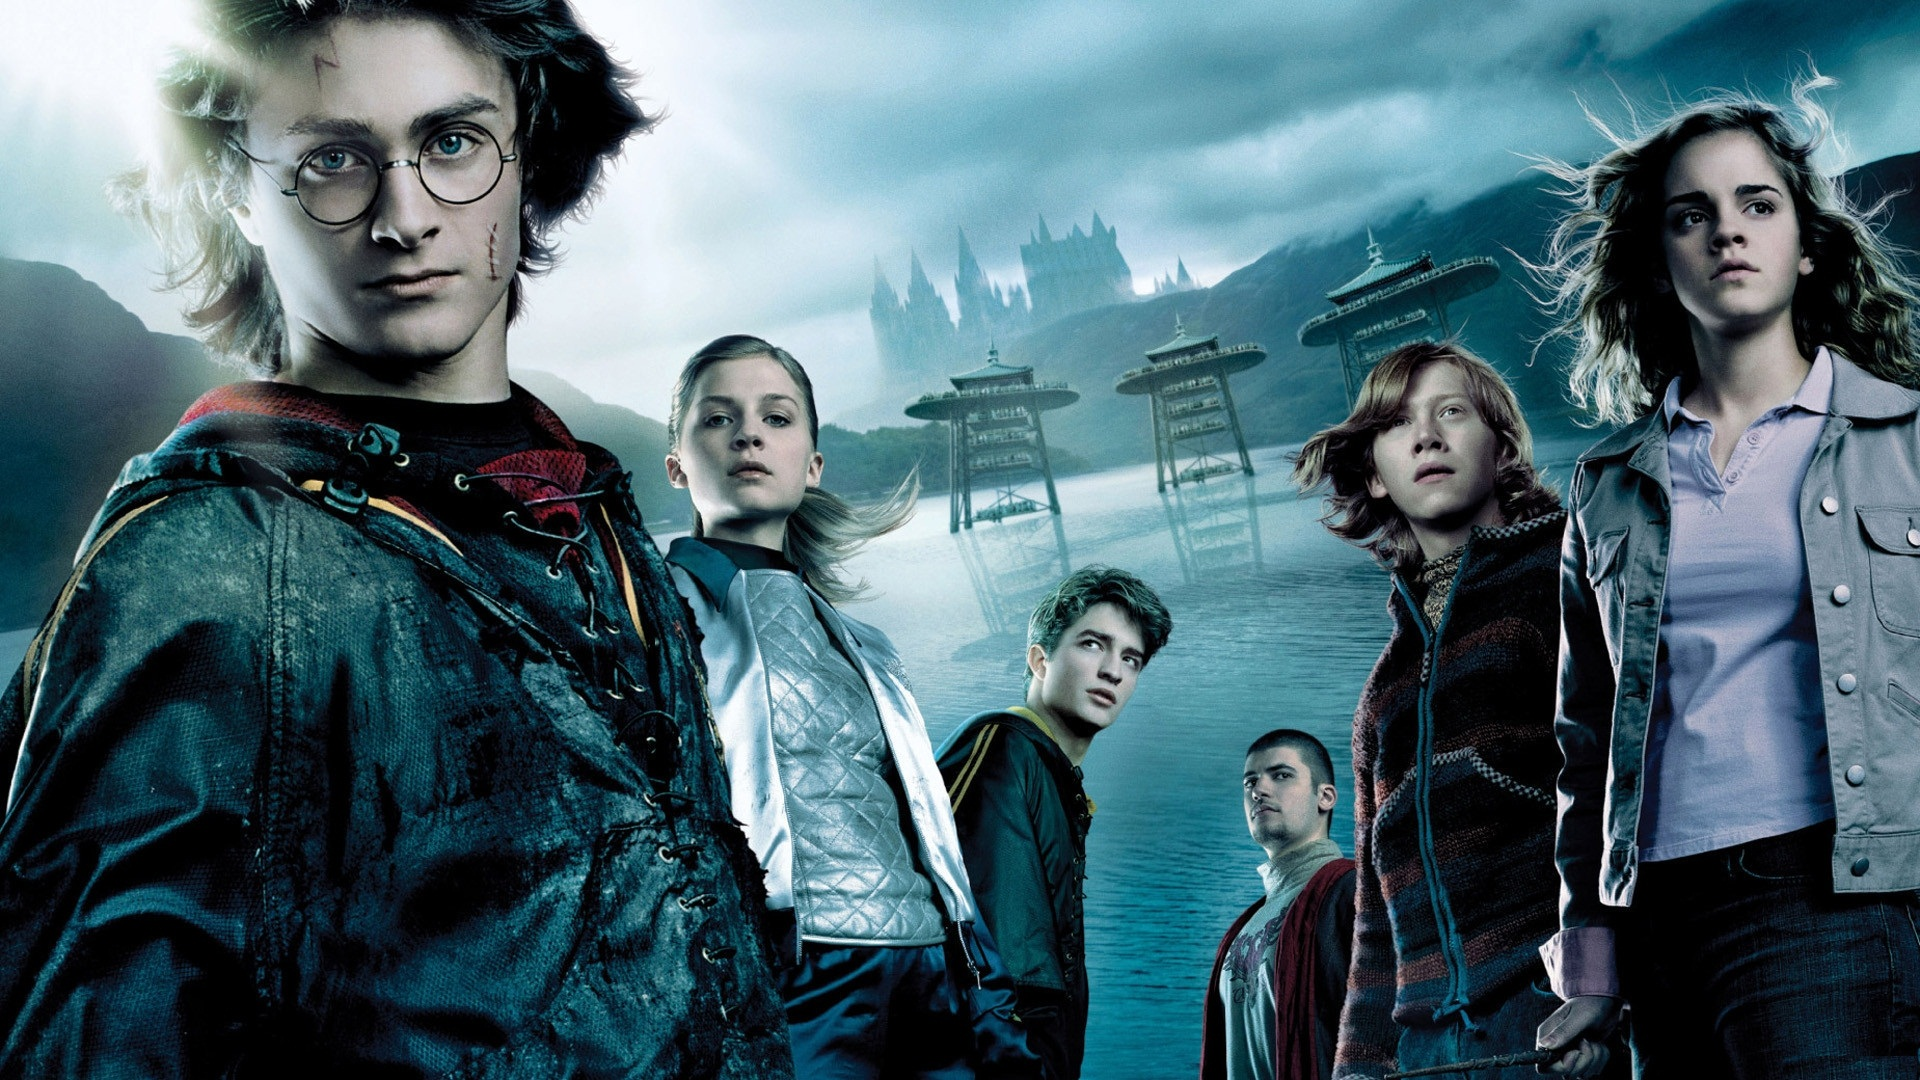 Harry-Potter-hd-Wallpaper